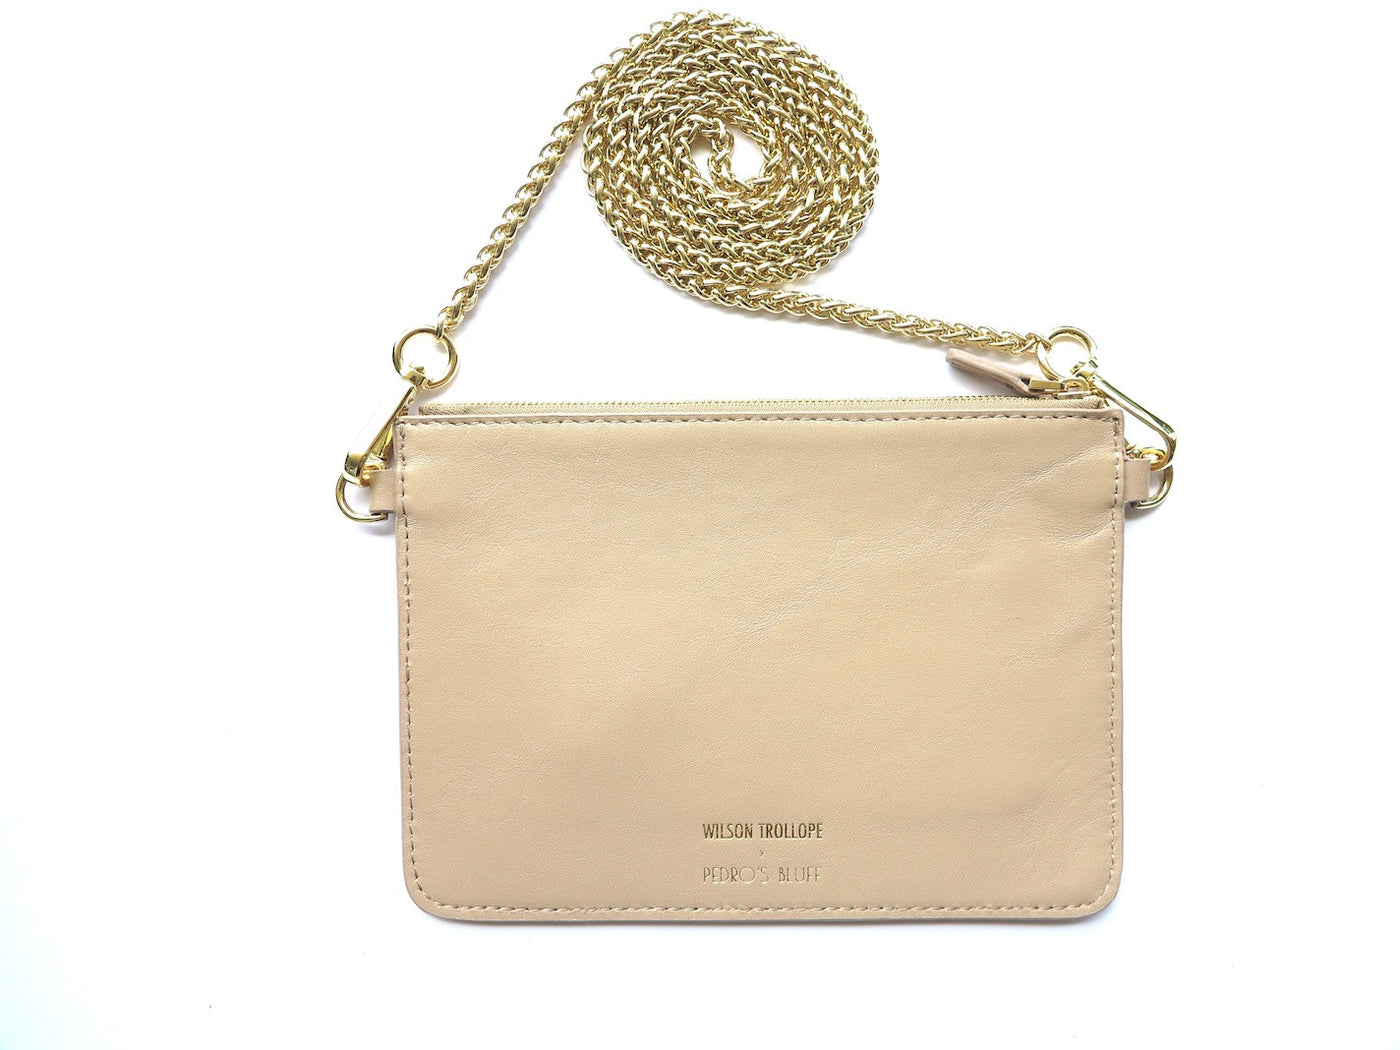 Soirée Pochette - Nude - PEDRO'S BLUFF - New Zealand Leather Bags & Accessories